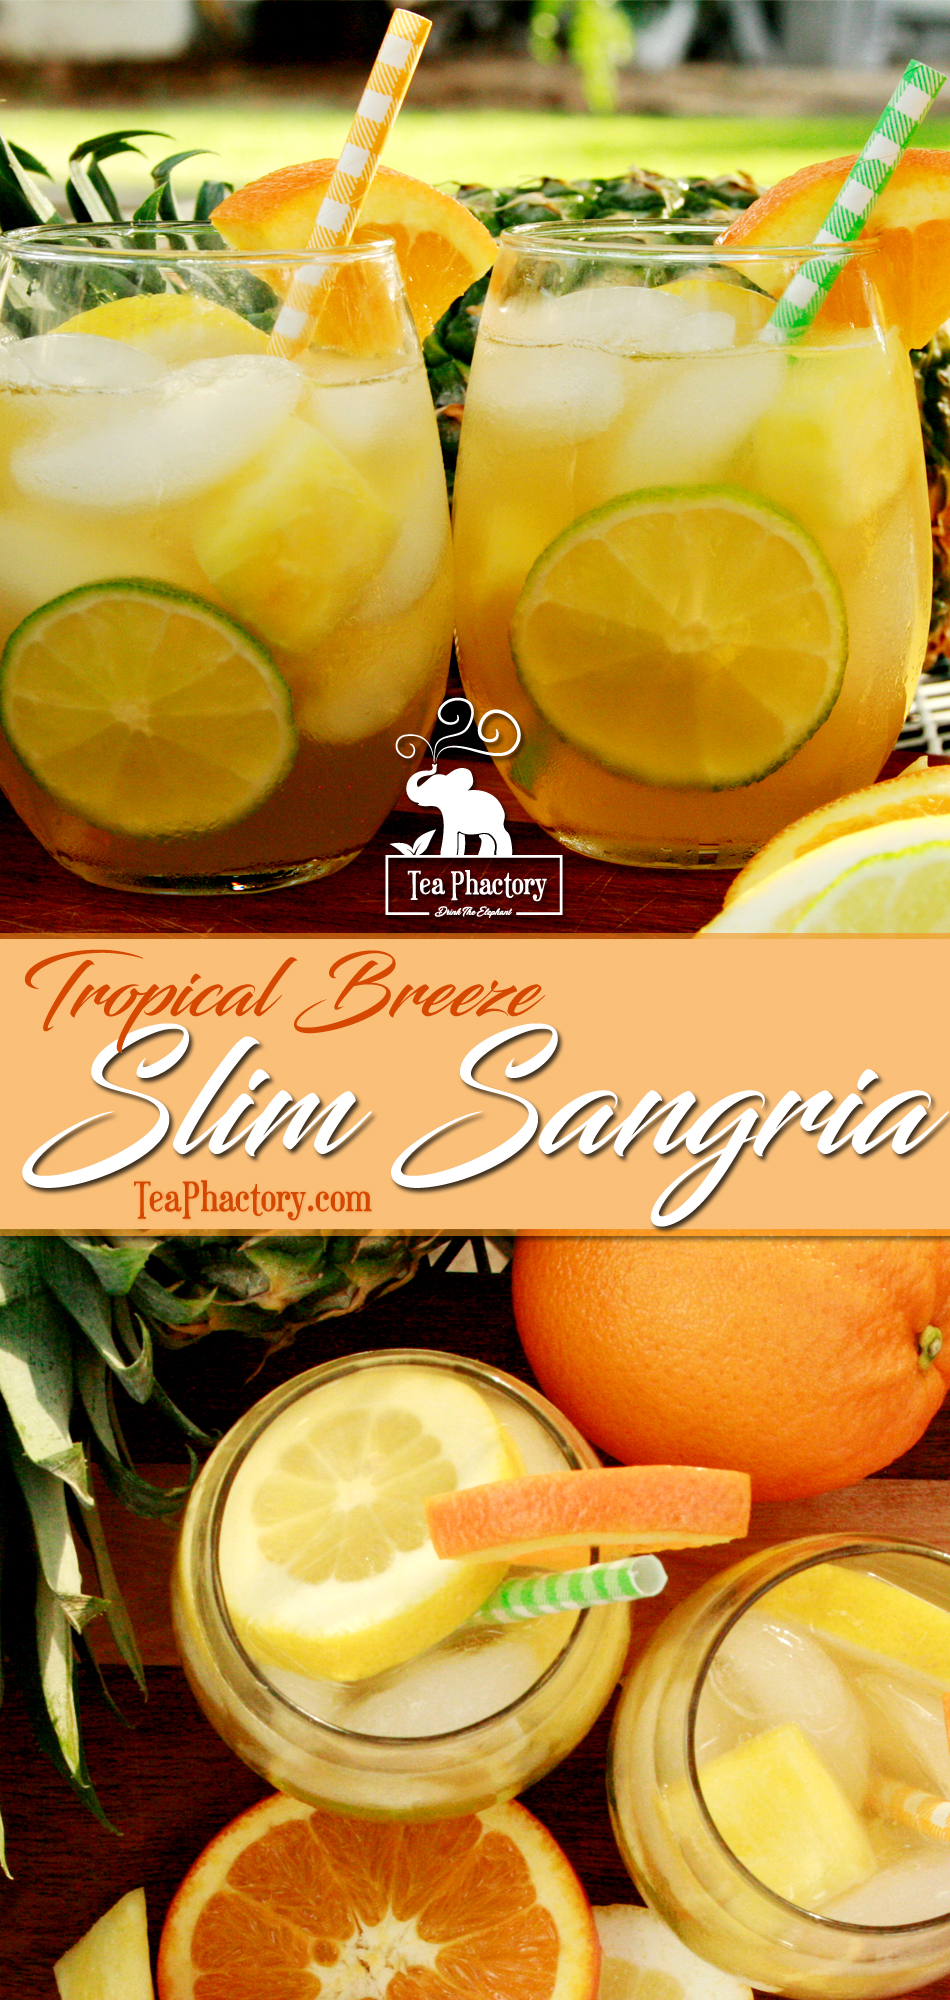 Tropical Breeze Slim Sangria CockTeas tm